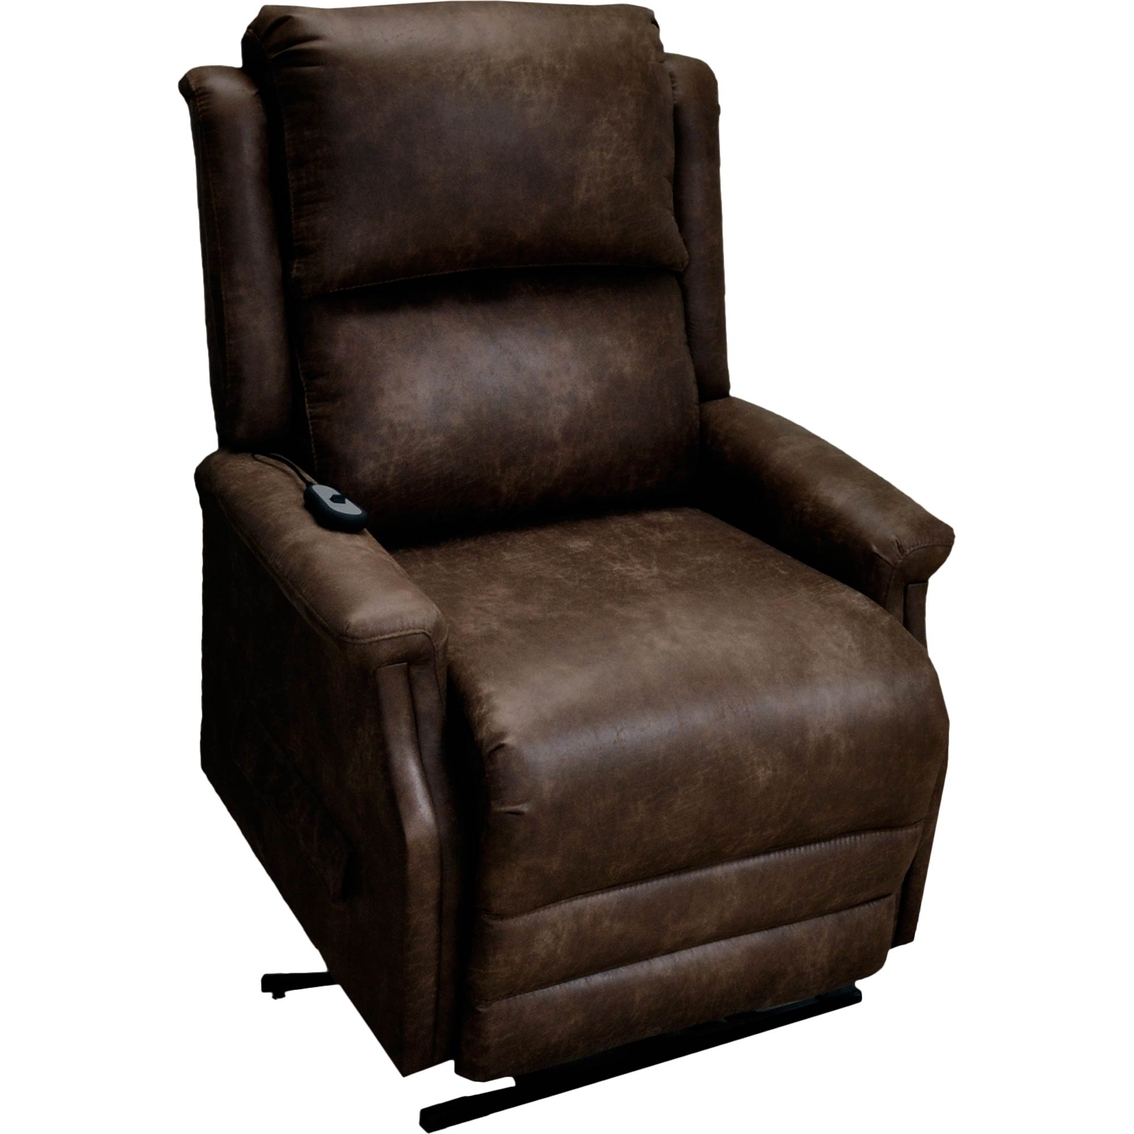 small lift chairs recliners leather of bath lansdown franklin arthur recliner and